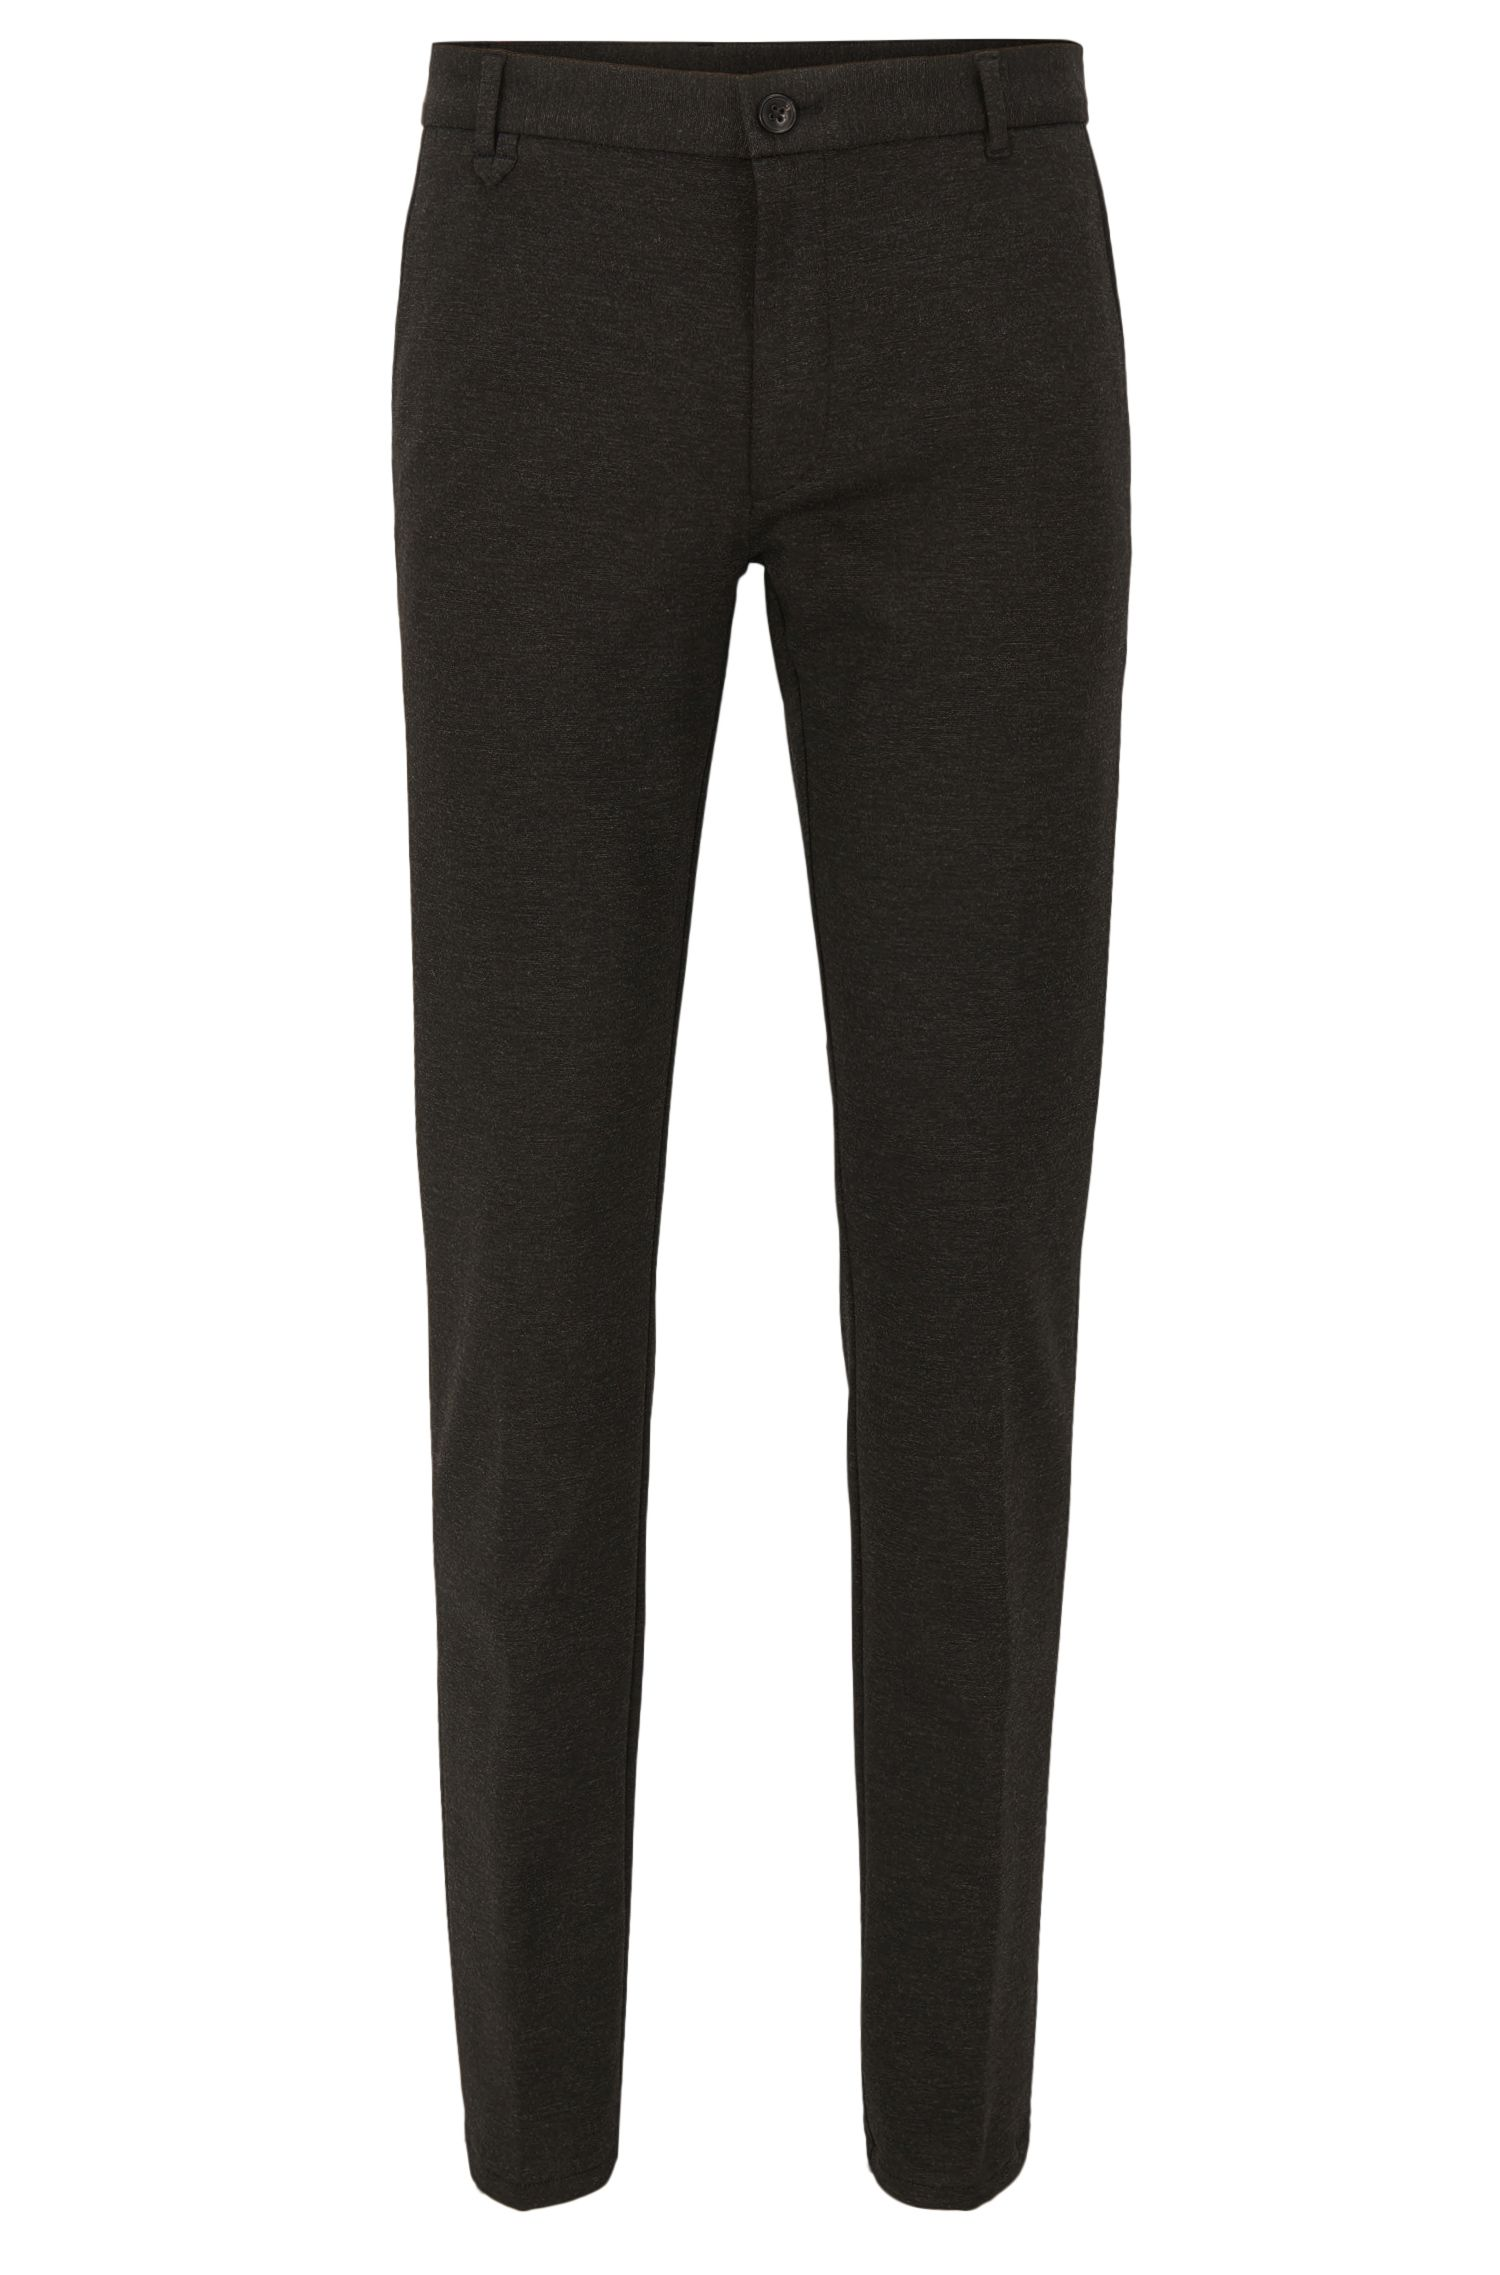 Extra-slim-fit trousers in a stretch technical blend